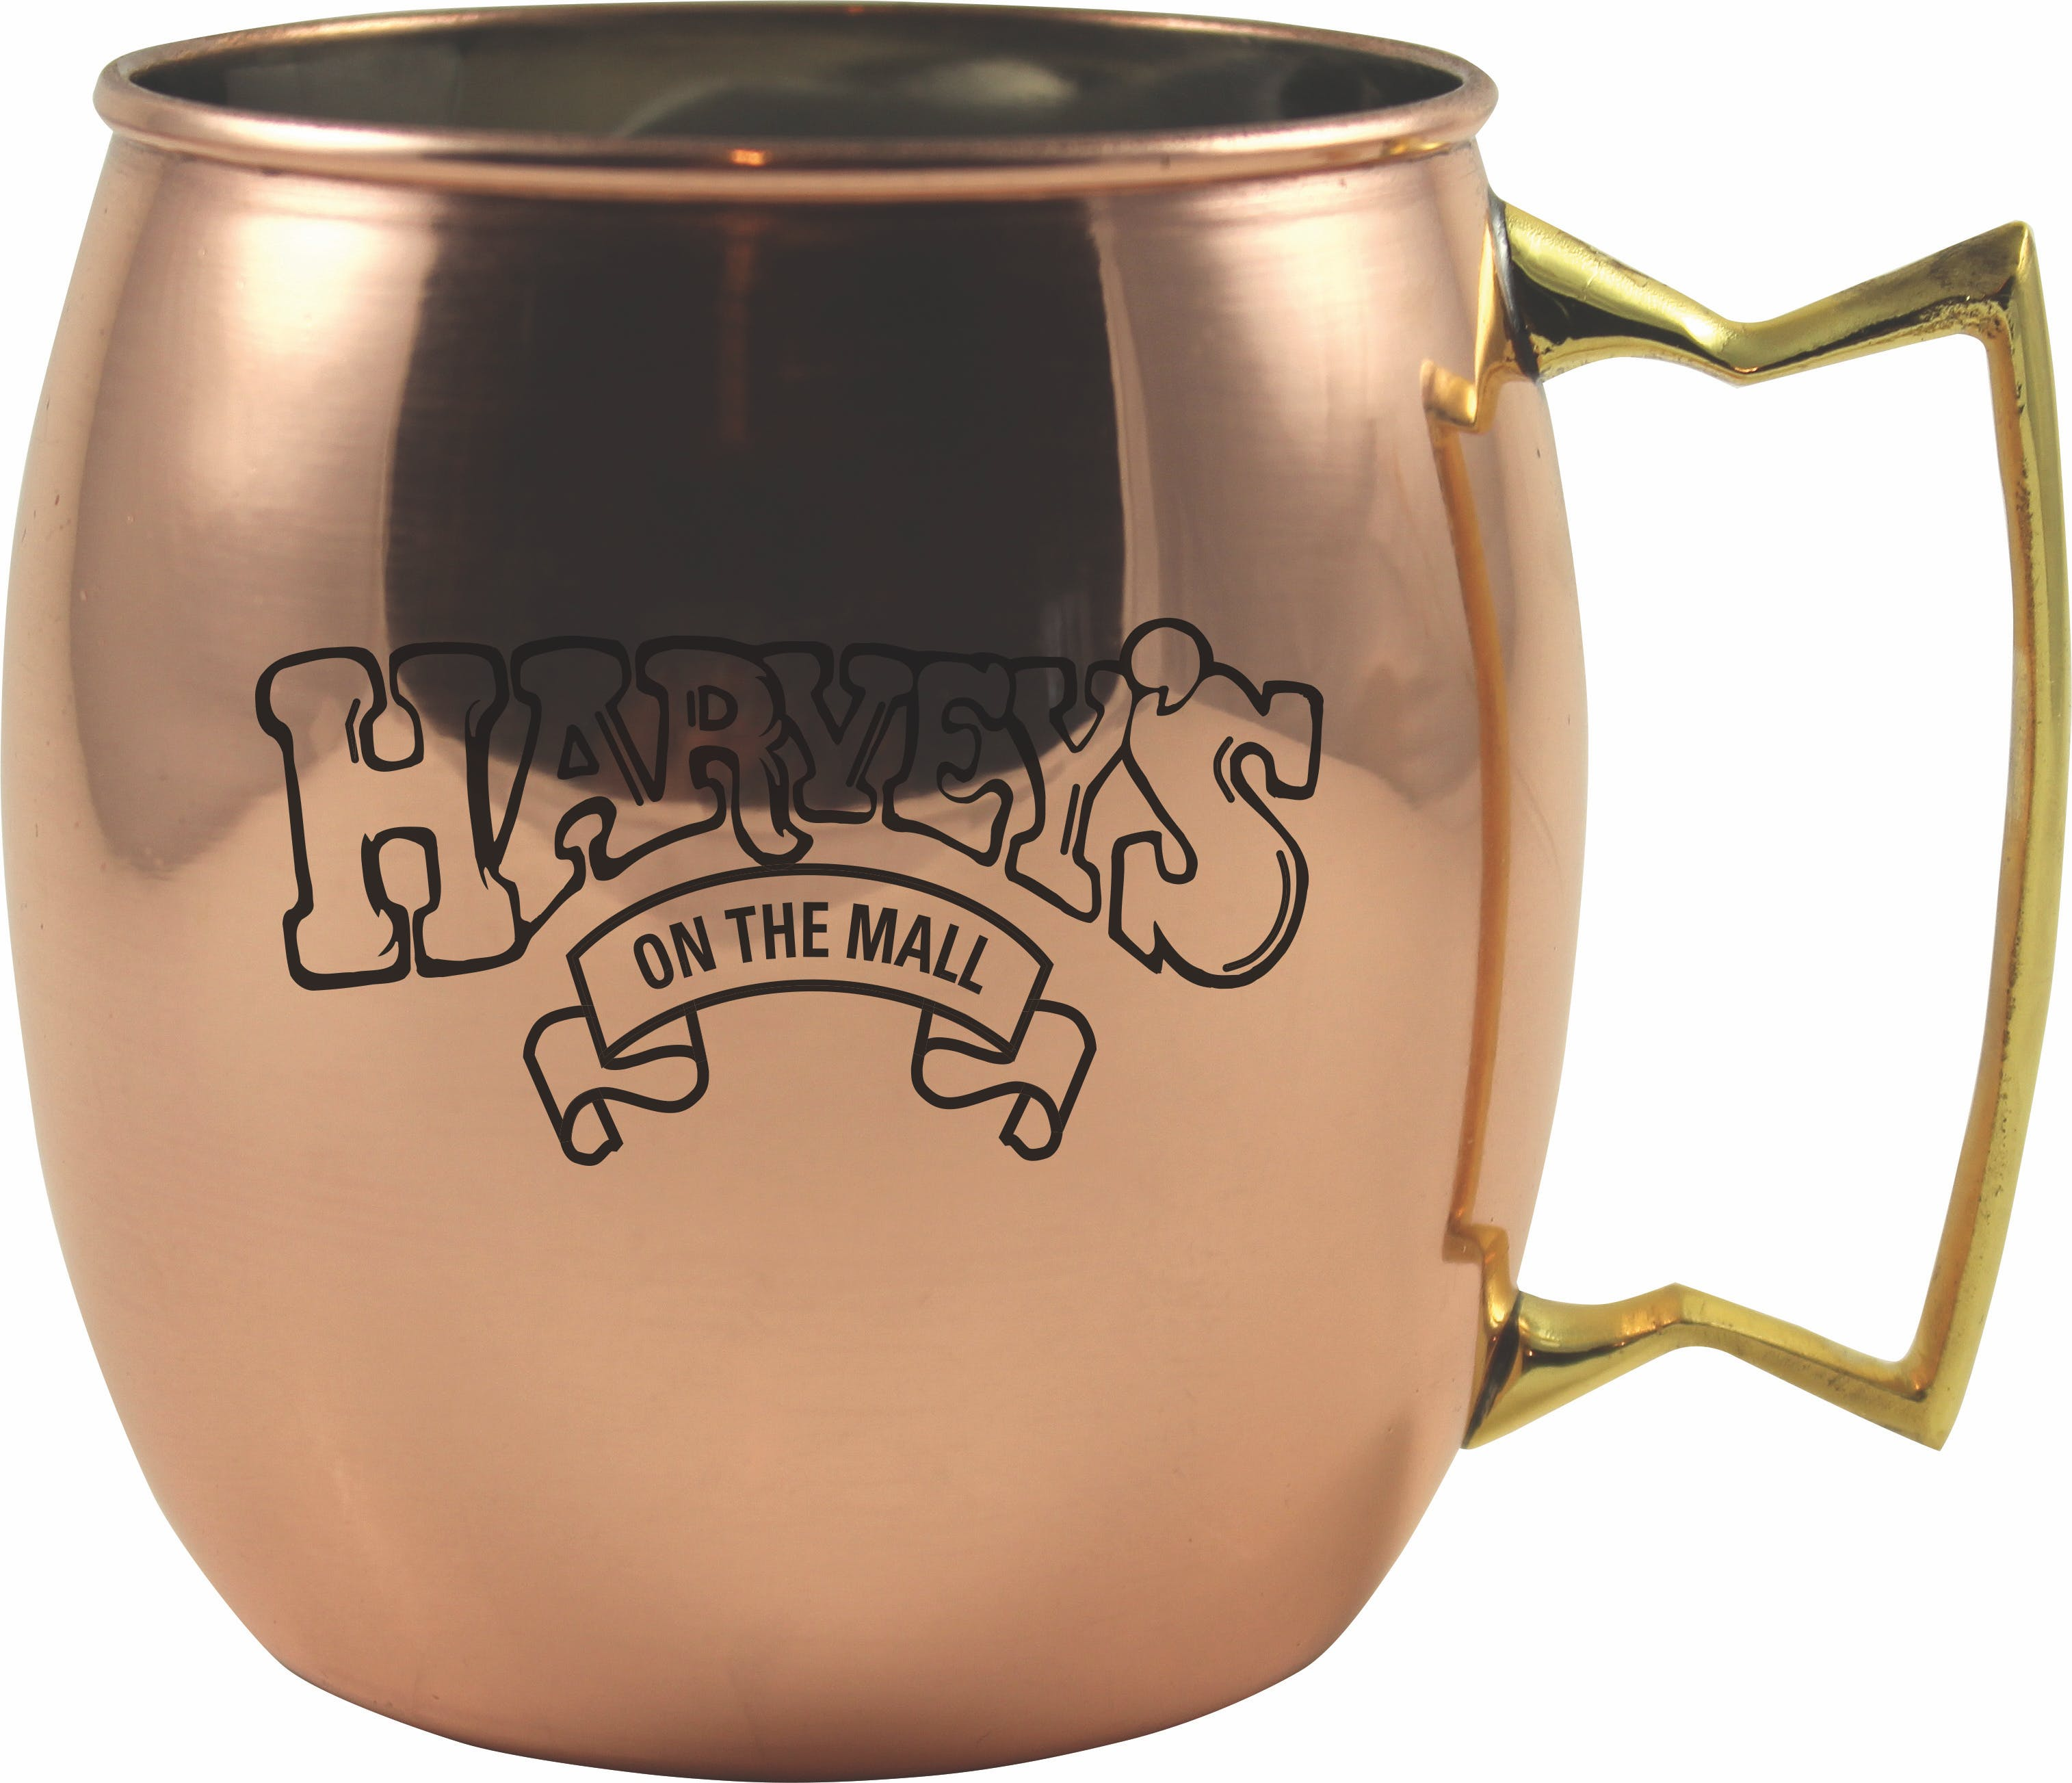 20 oz. Moscow Mule Beer glass sold by Prestige Glassware